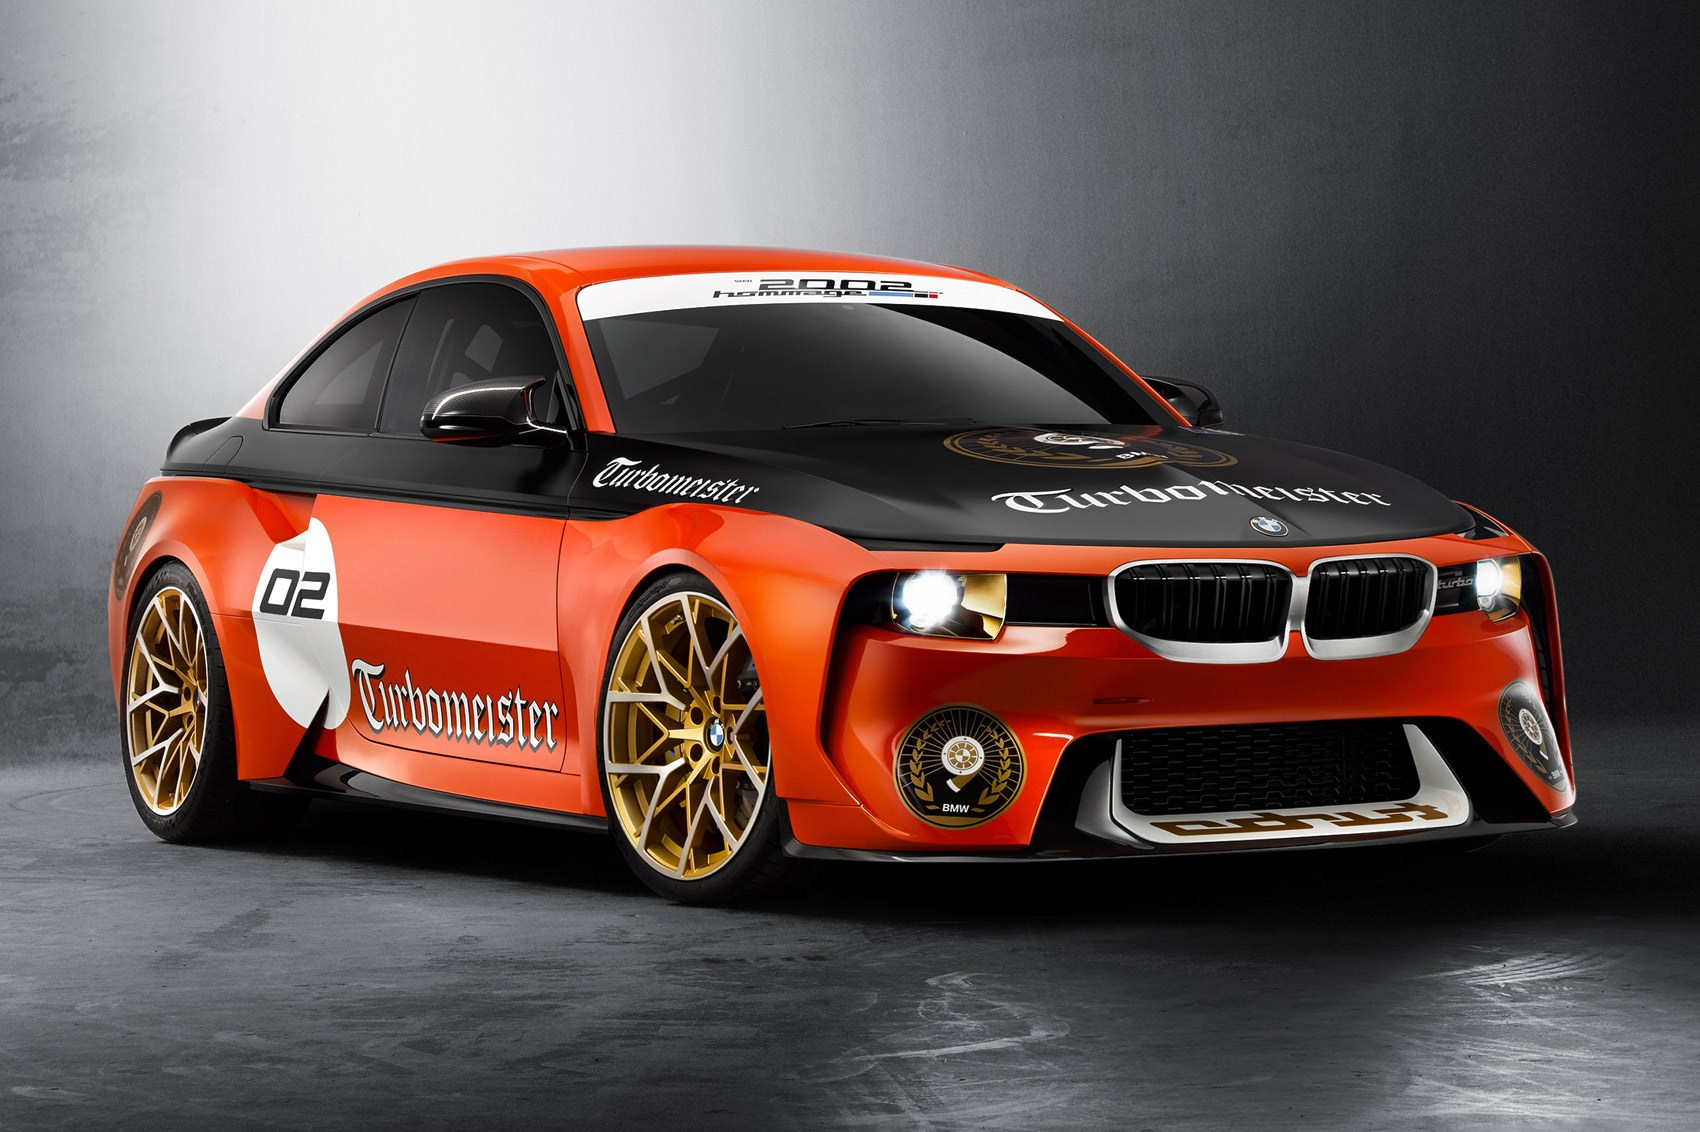 BMW 2002 Hommage pays tribute to motor racing glories